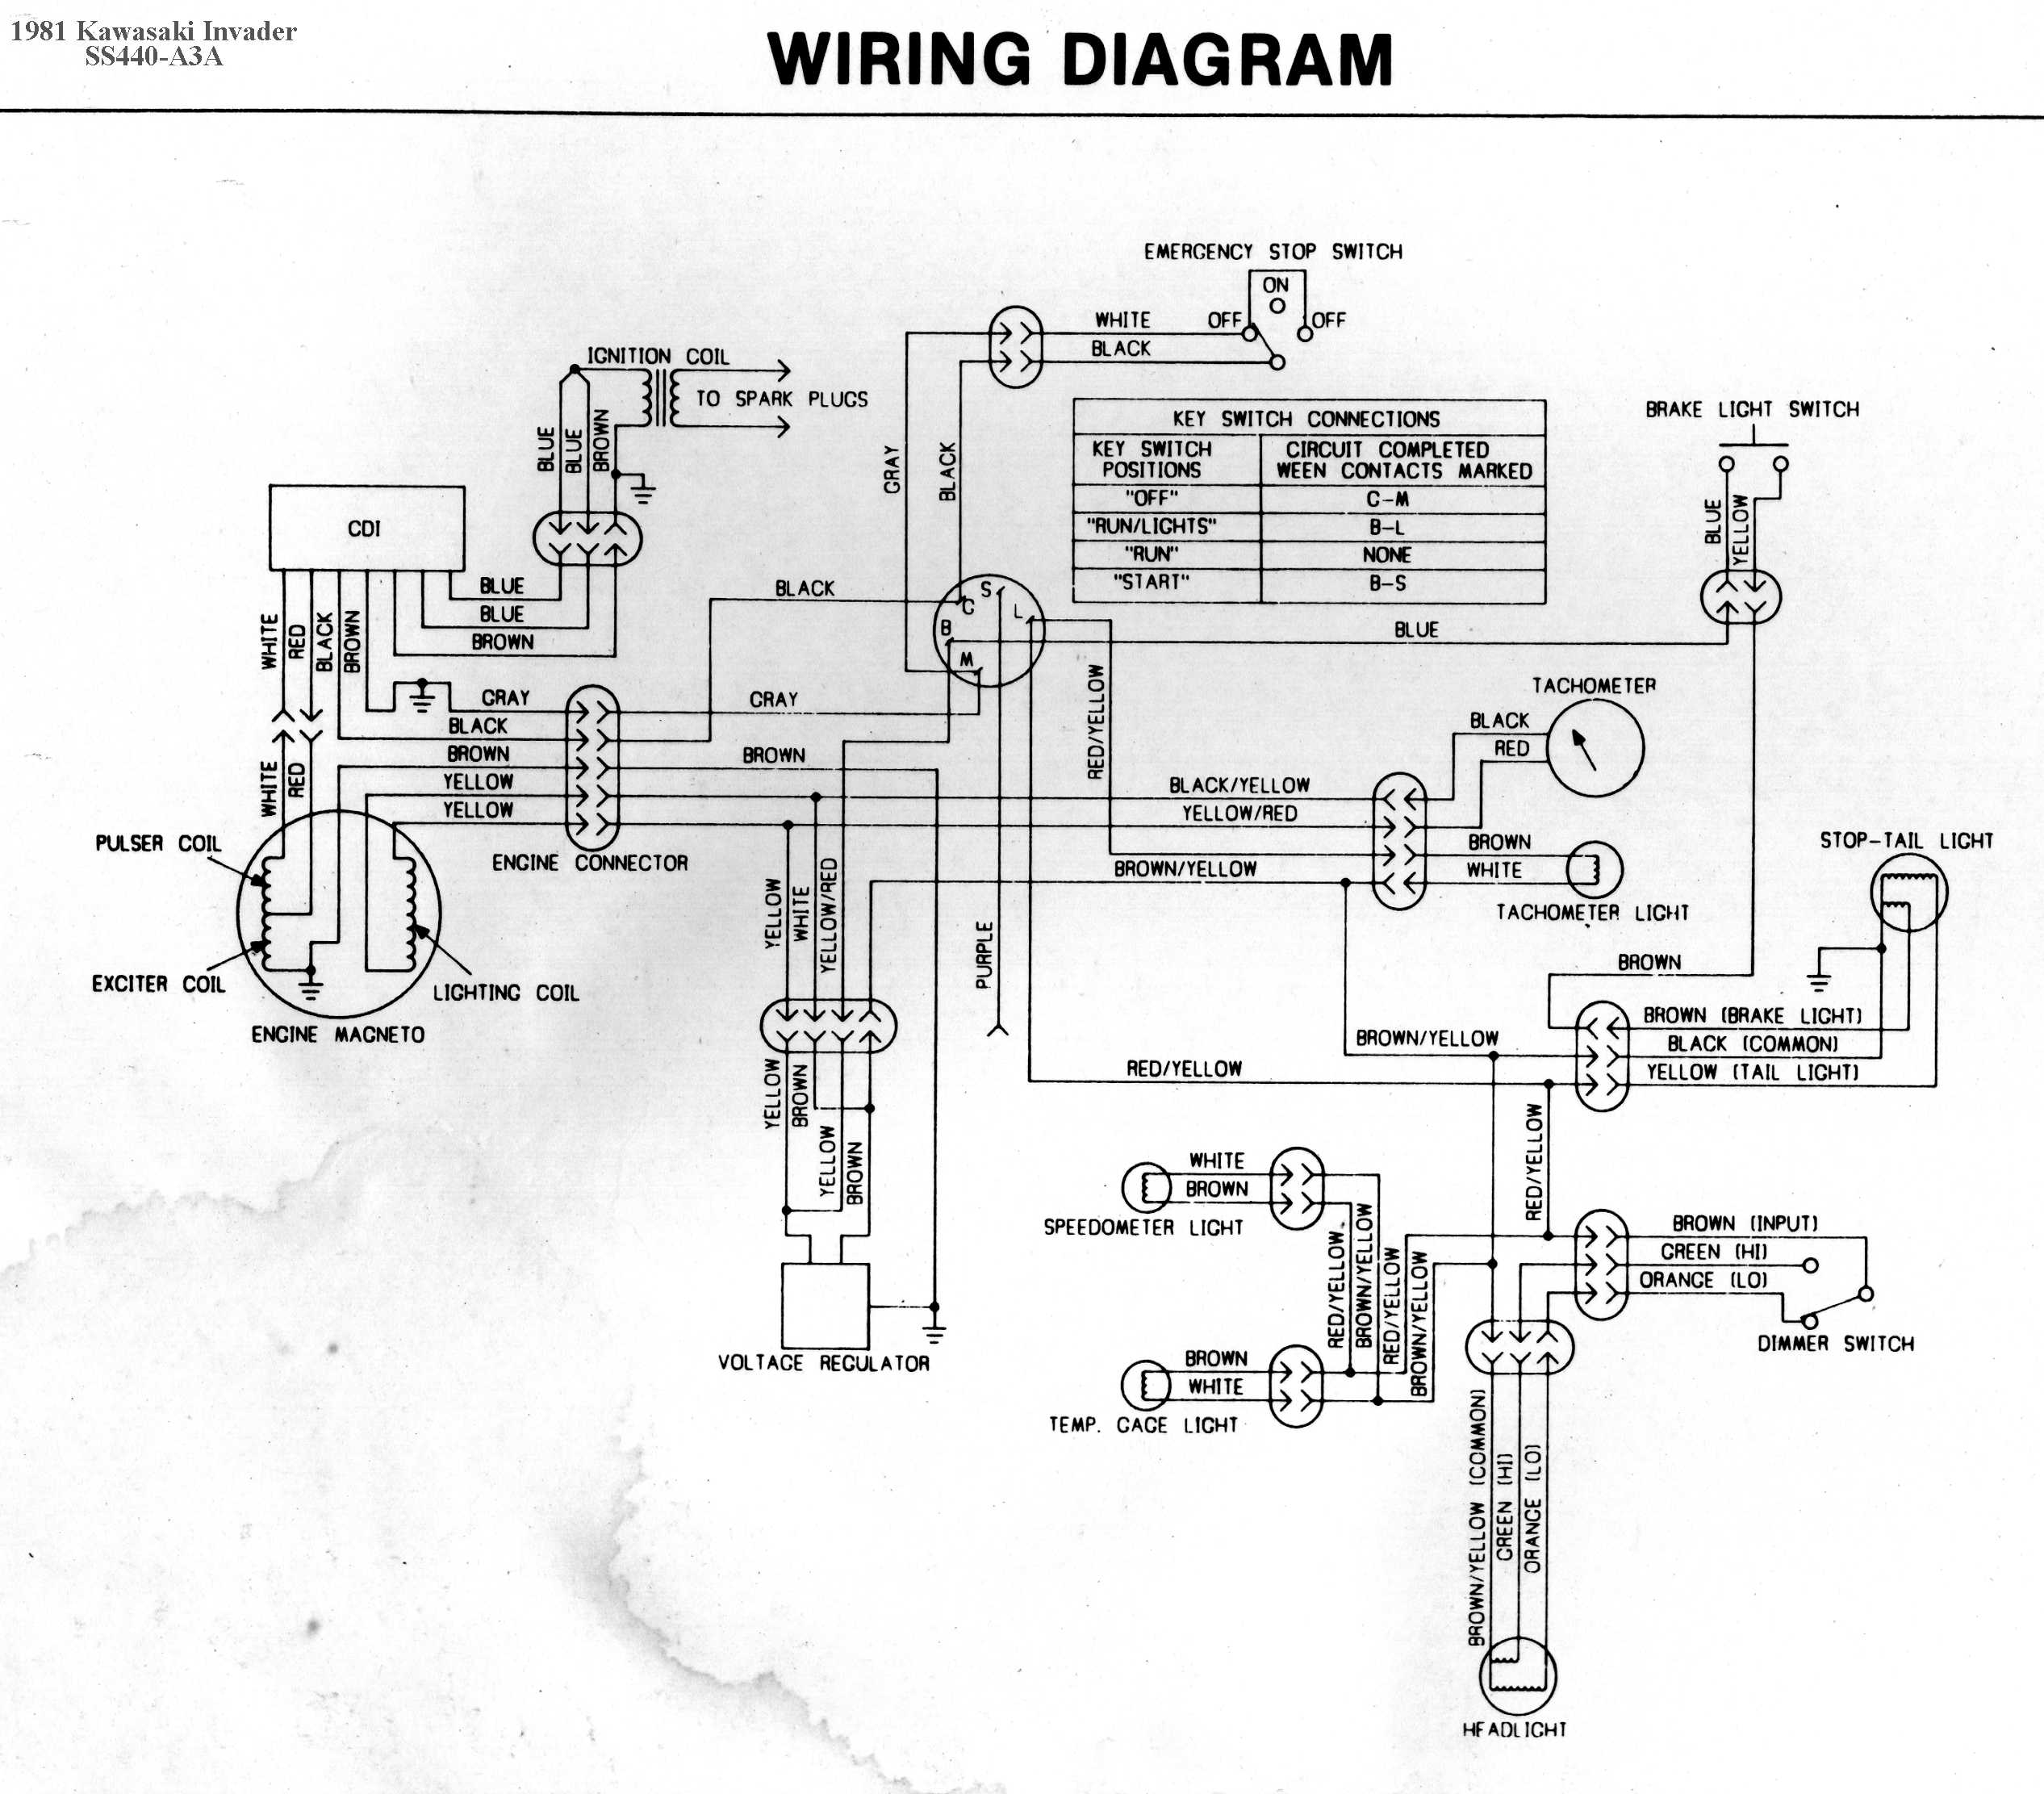 ski doo rev wiring diagram 2014 ski doo headlight wiring diagram kawasaki invader snowmobile wiring diagrams